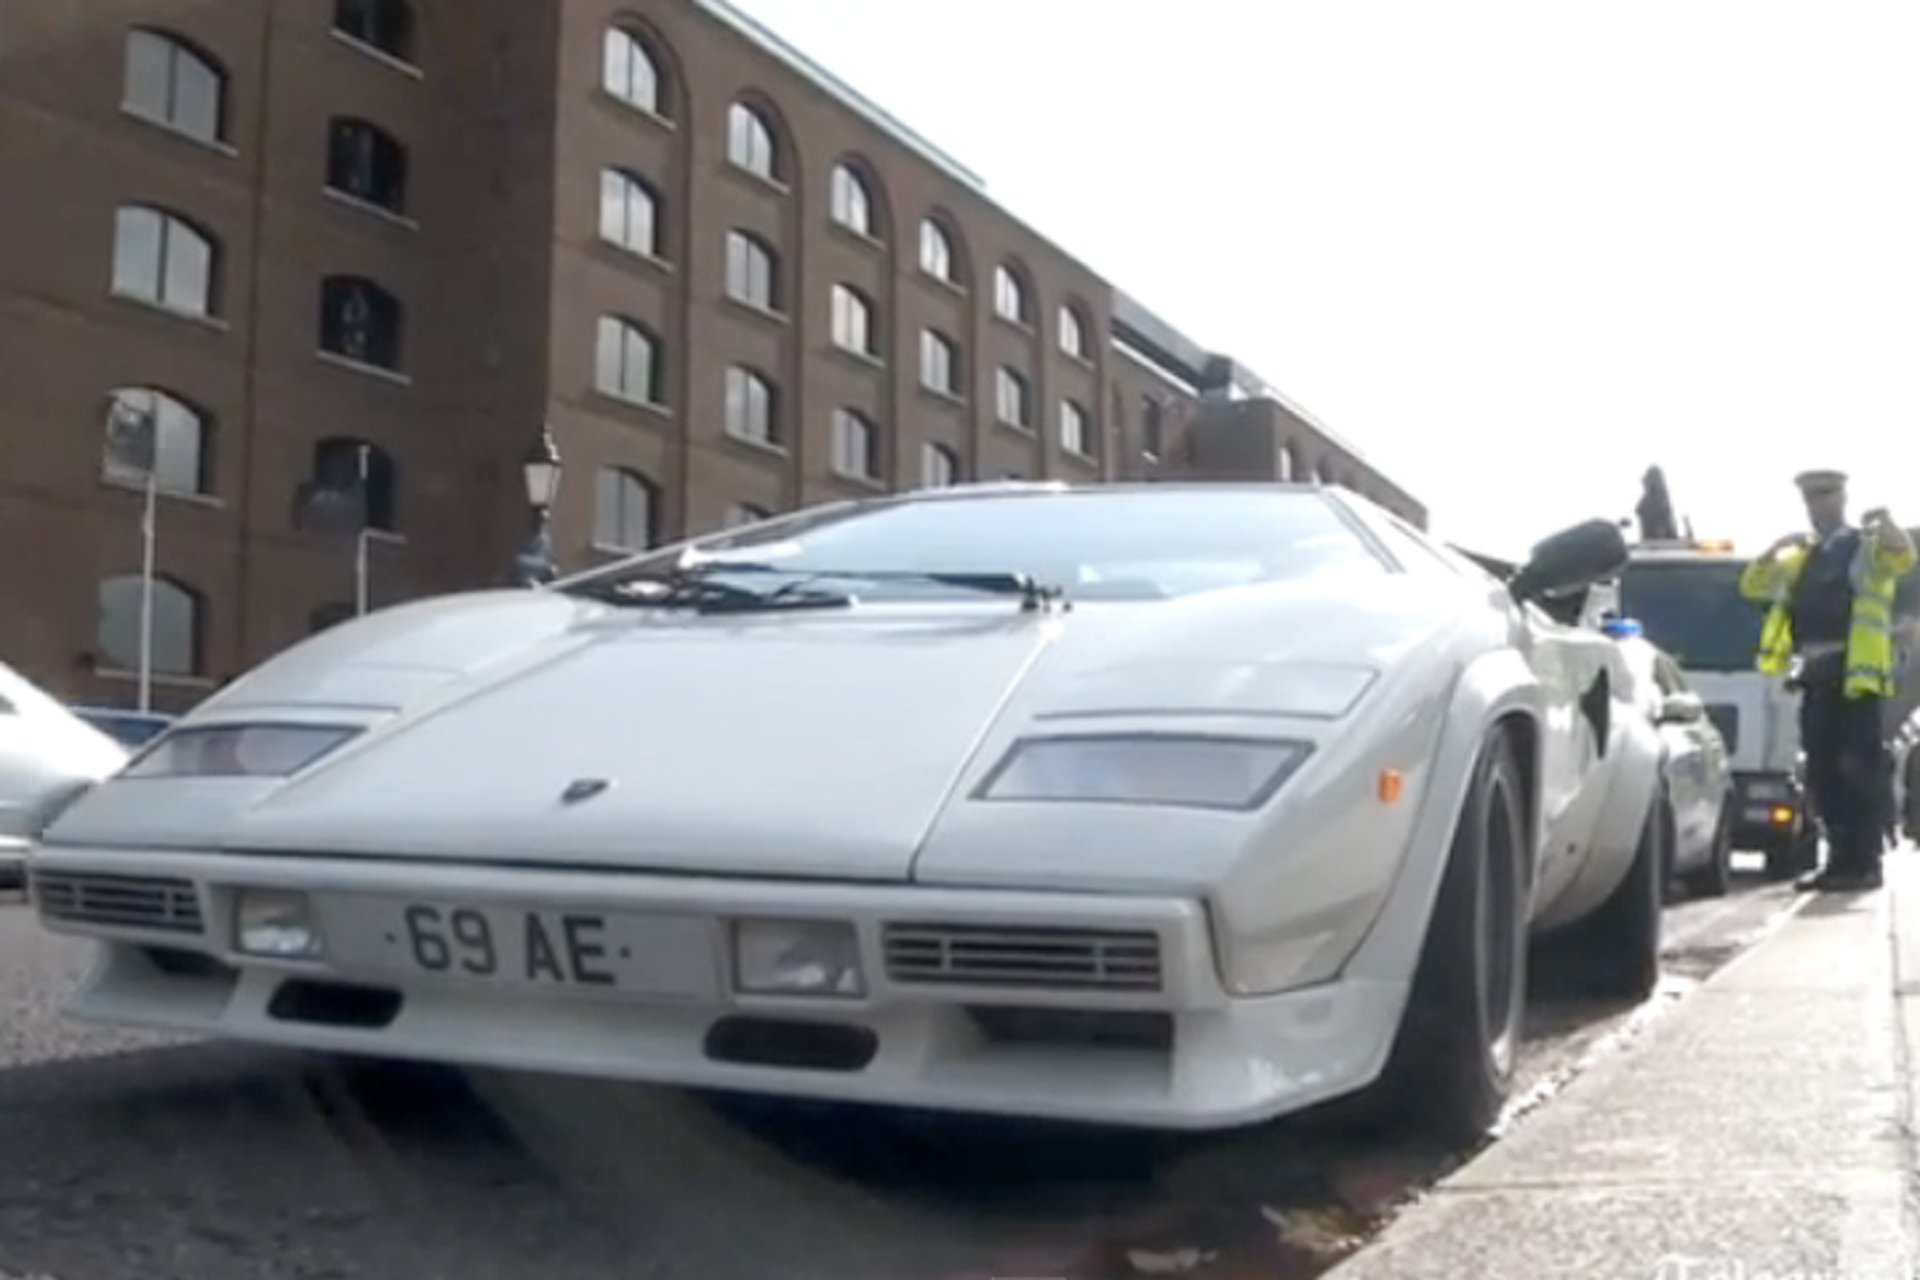 Rare Lamborghini Abandoned by London's Tower Bridge